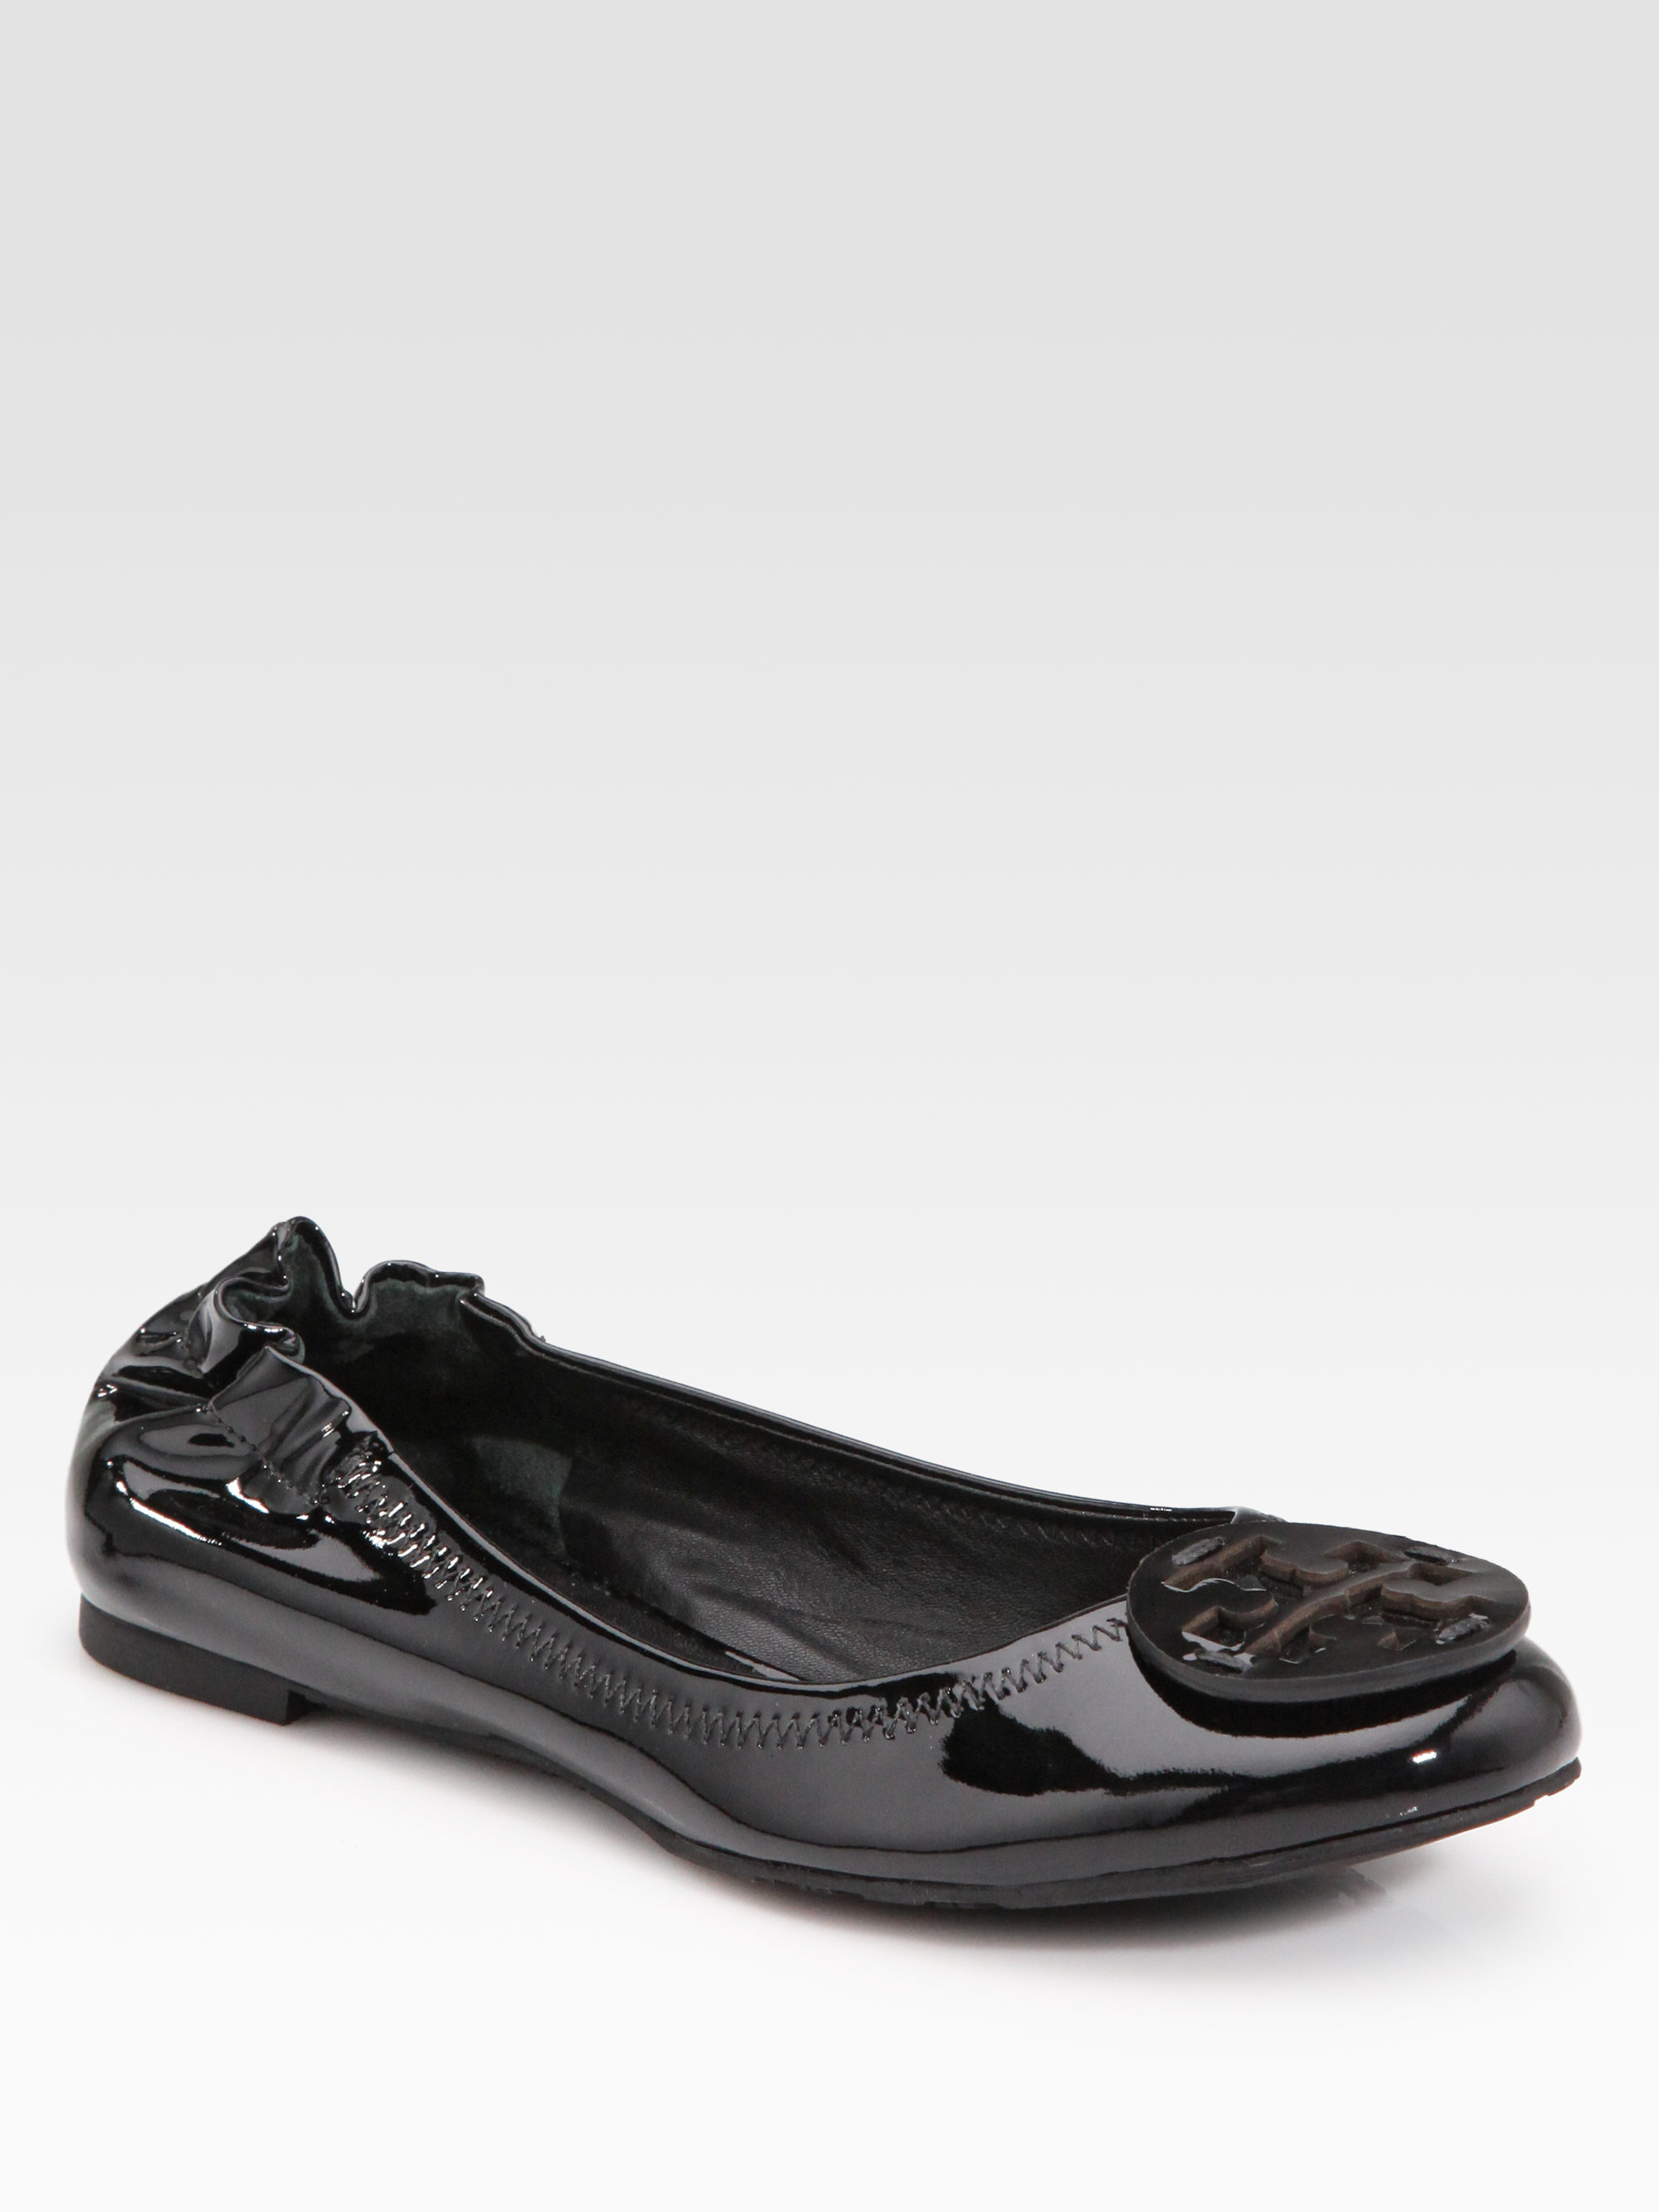 42ef308db Gallery. Previously sold at: Saks Fifth Avenue · Women's Tory Burch Reva  Flats